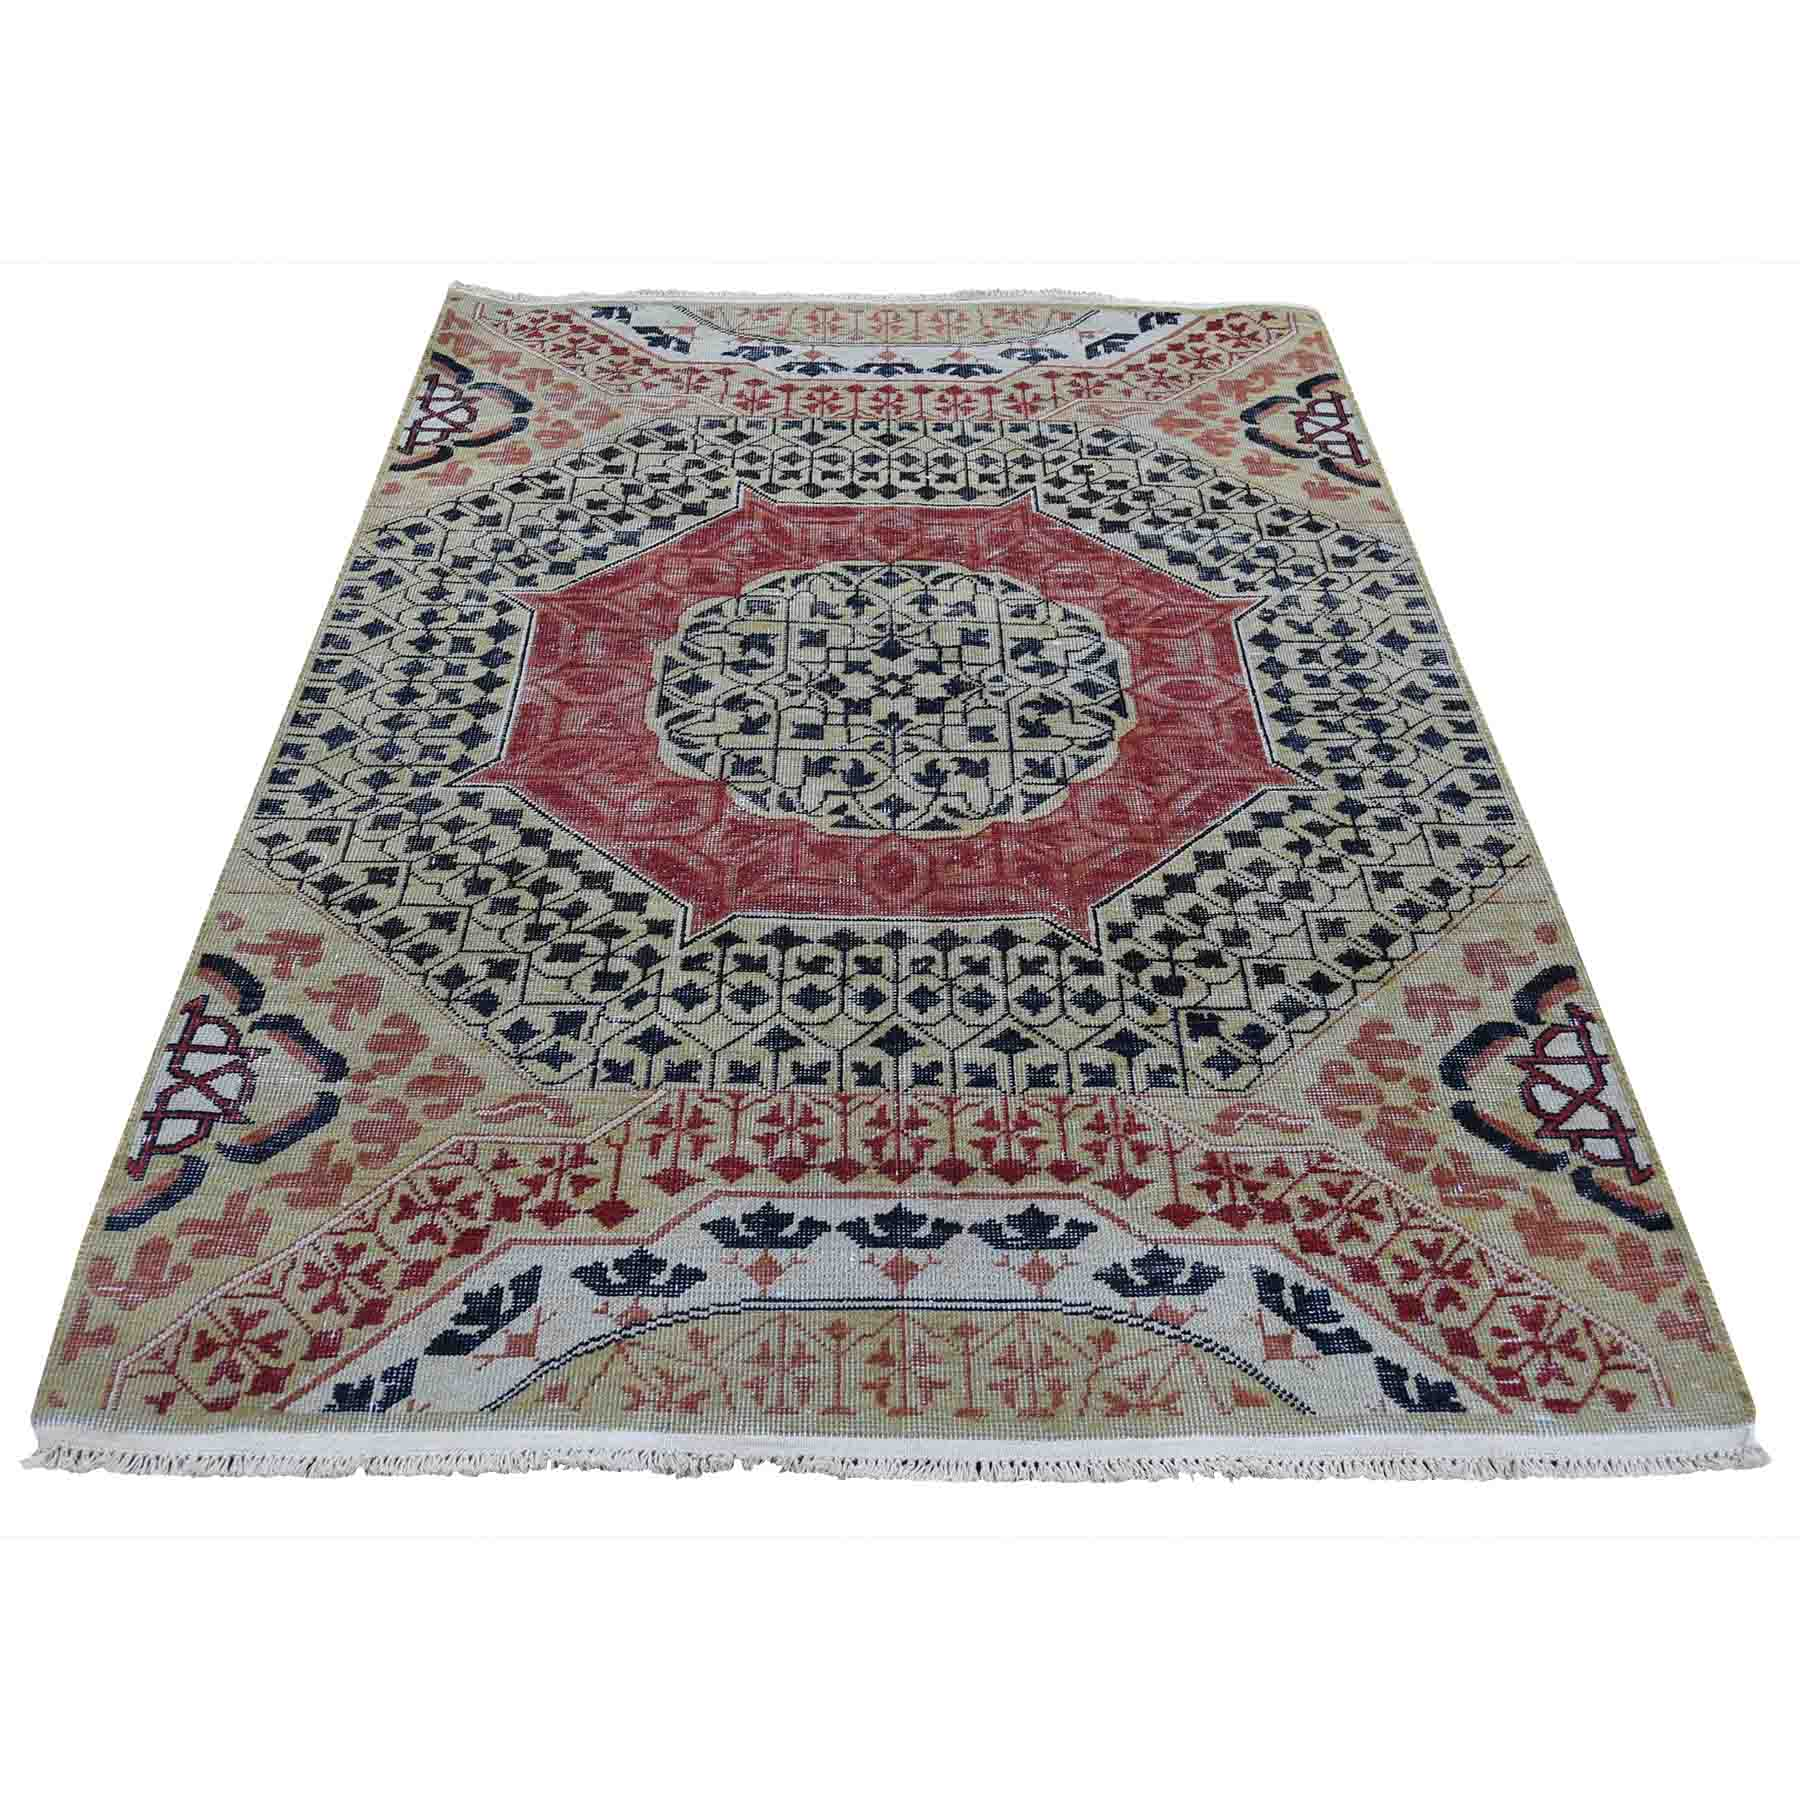 4'x6' Vintage Look Mamluk Zero Pile Shaved Low Worn Wool Rug